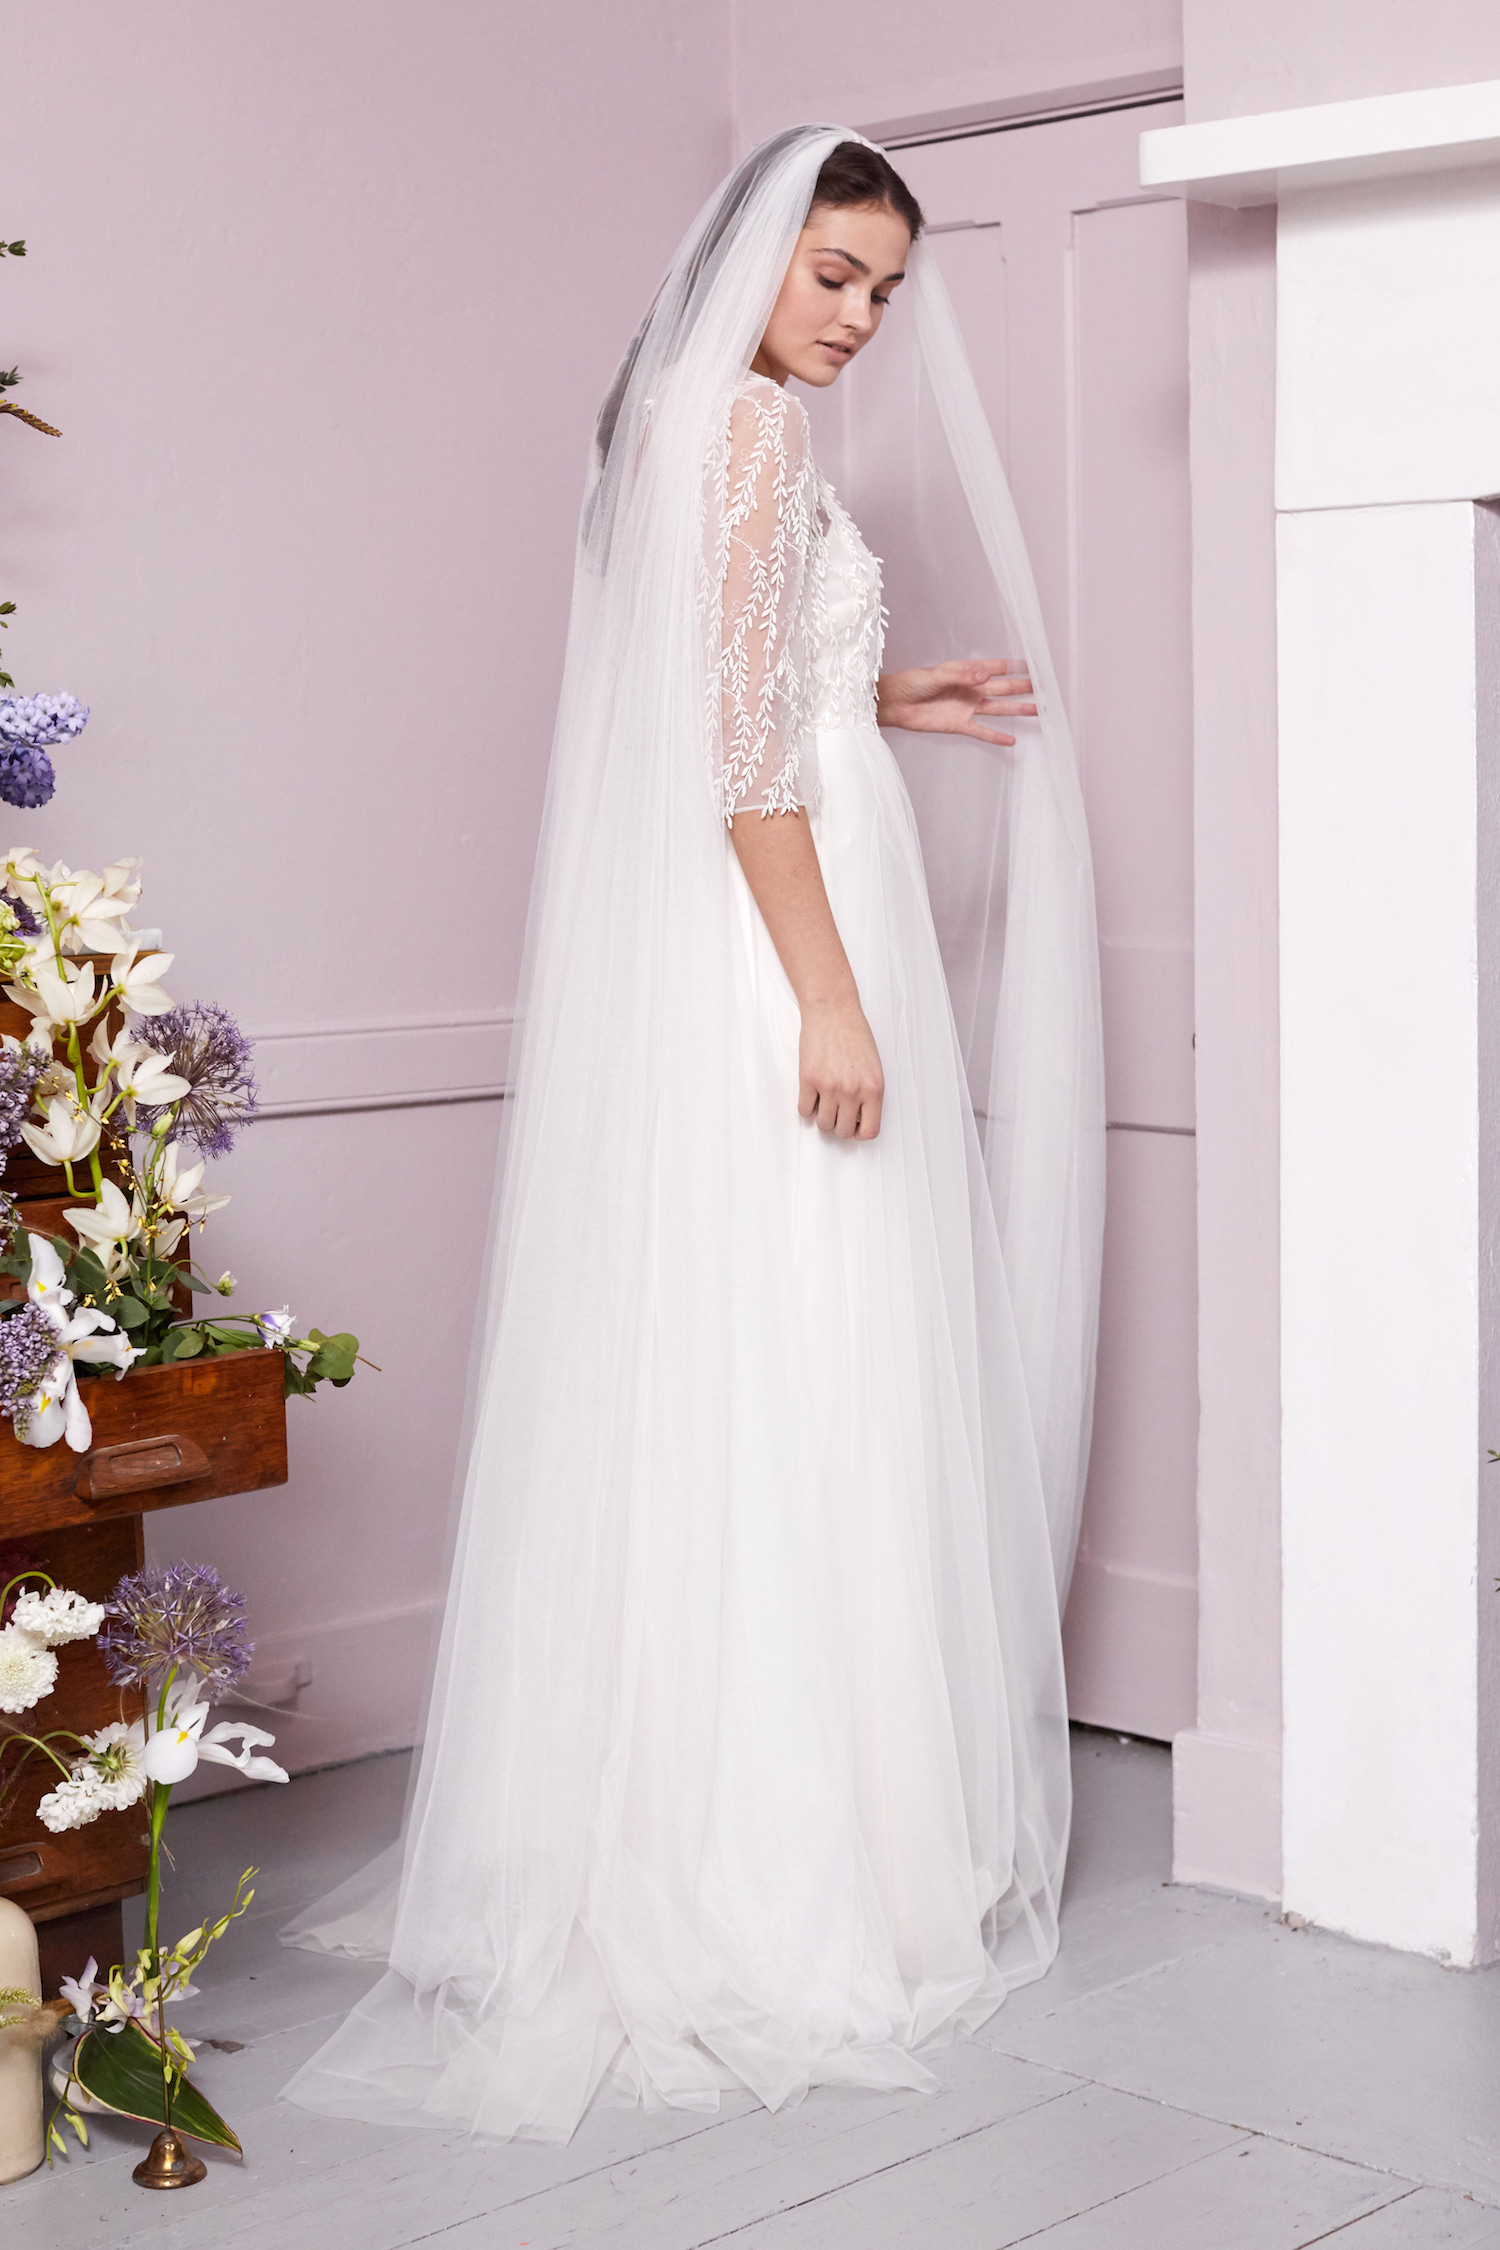 DOUBLE COMB PLAIN VEIL | WEDDING DRESS BY HALFPENNY LONDON